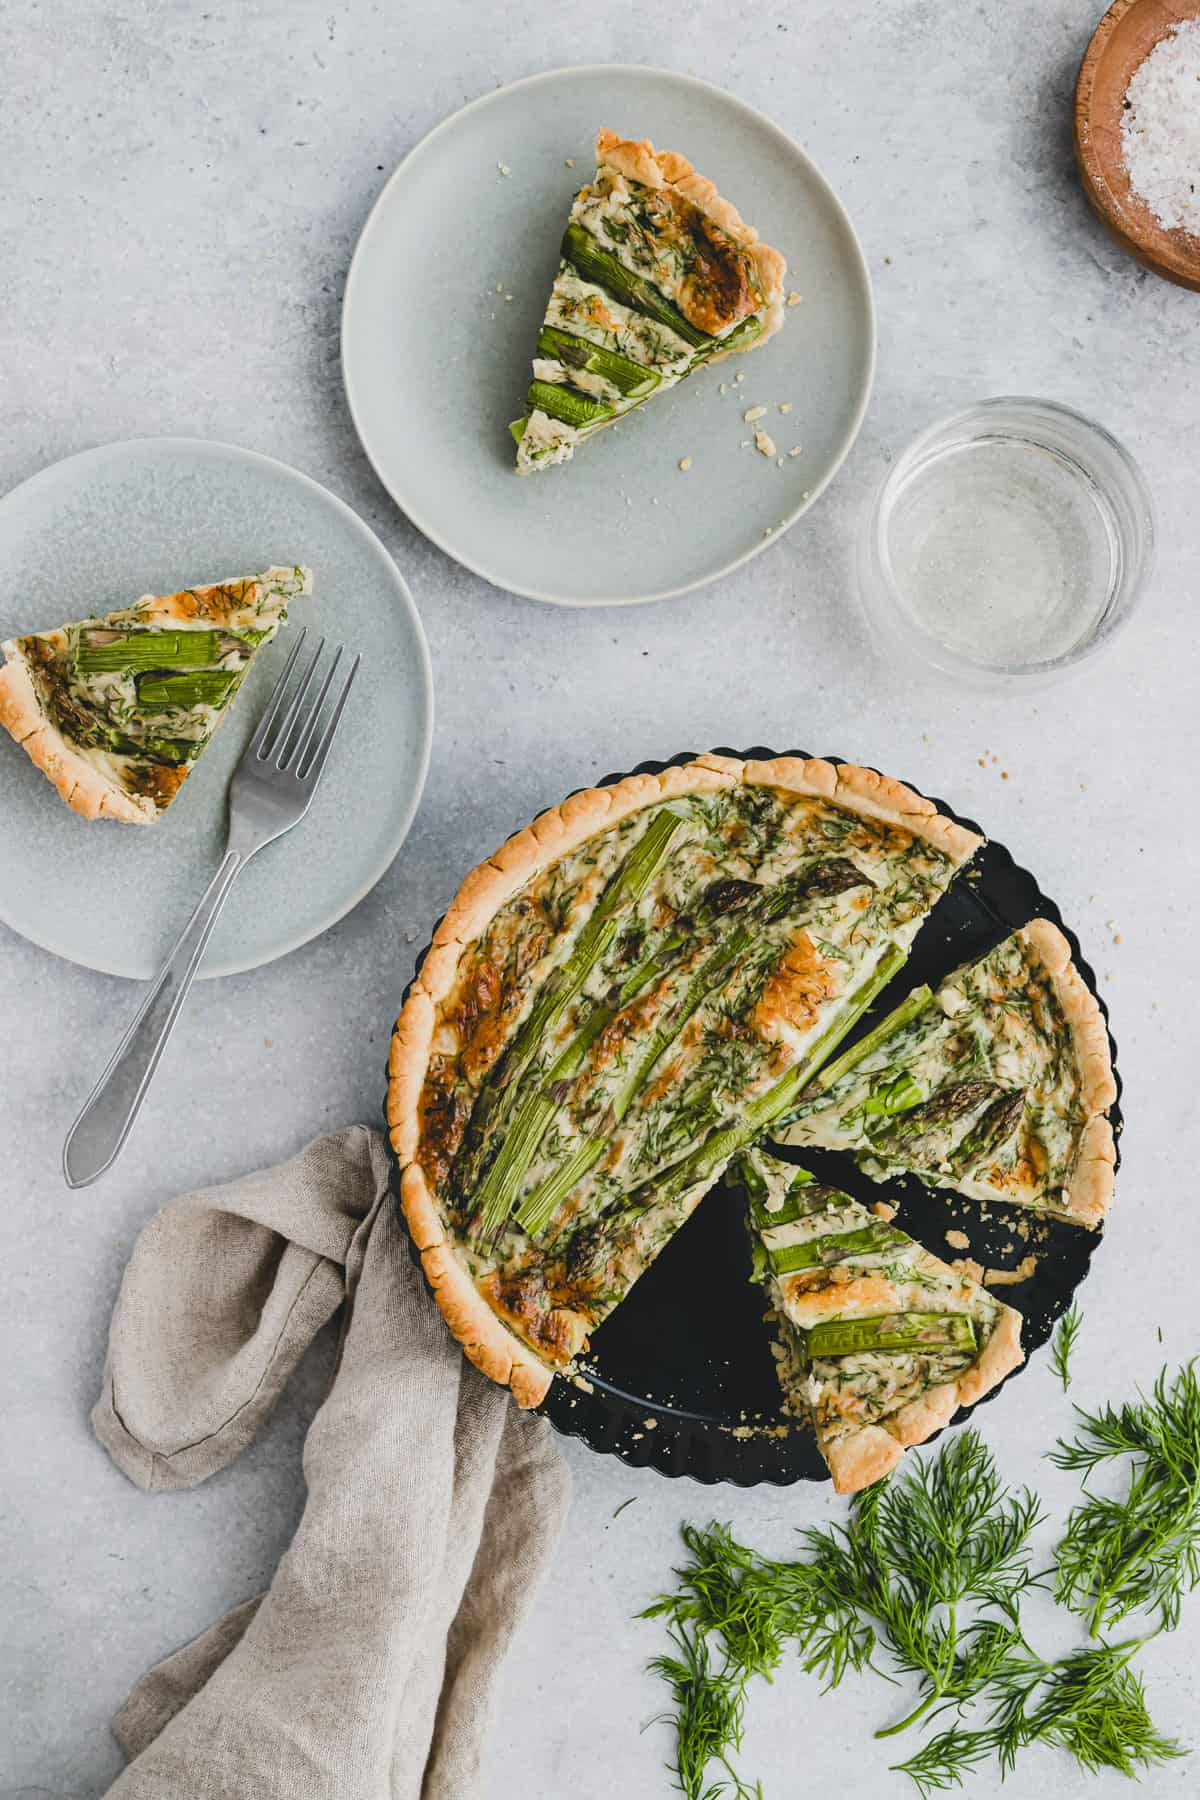 sliced quiche with green asparagus in a quiche pan next to two slices of quiche on a plate